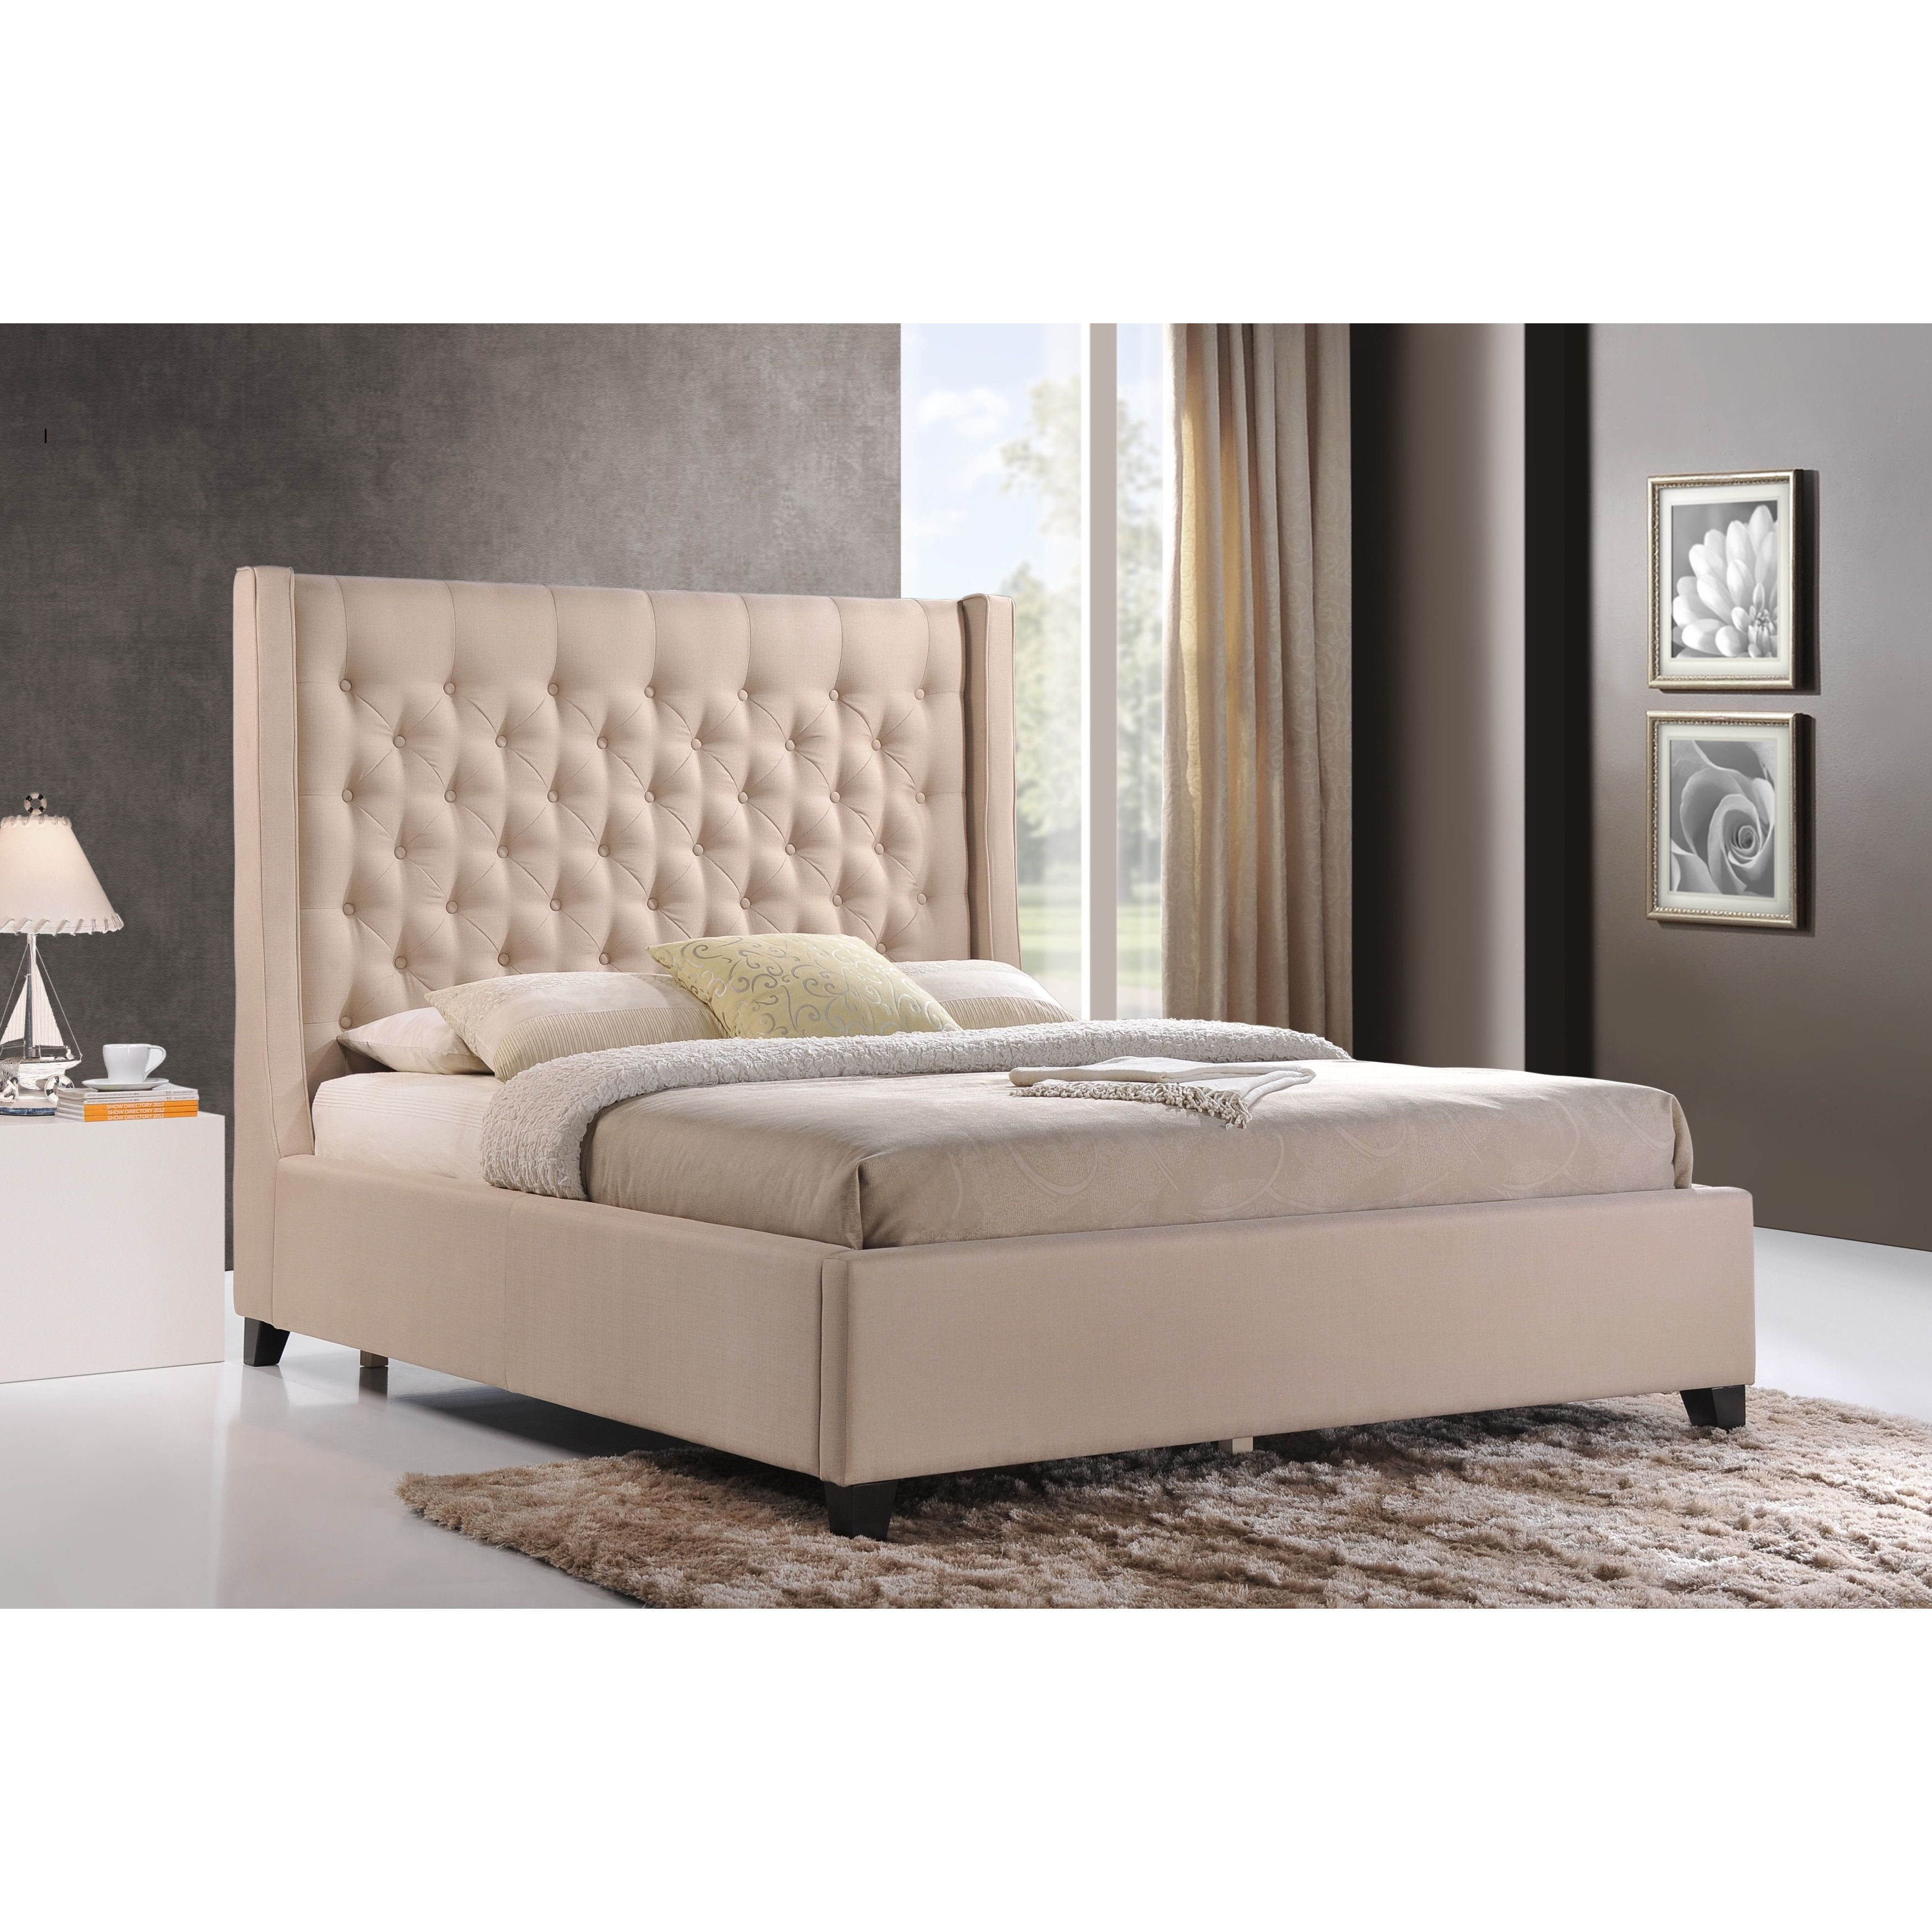 Luxeo Huntington Queen Size Tufted Upholstered Bed In Sand Color Fabric Beige